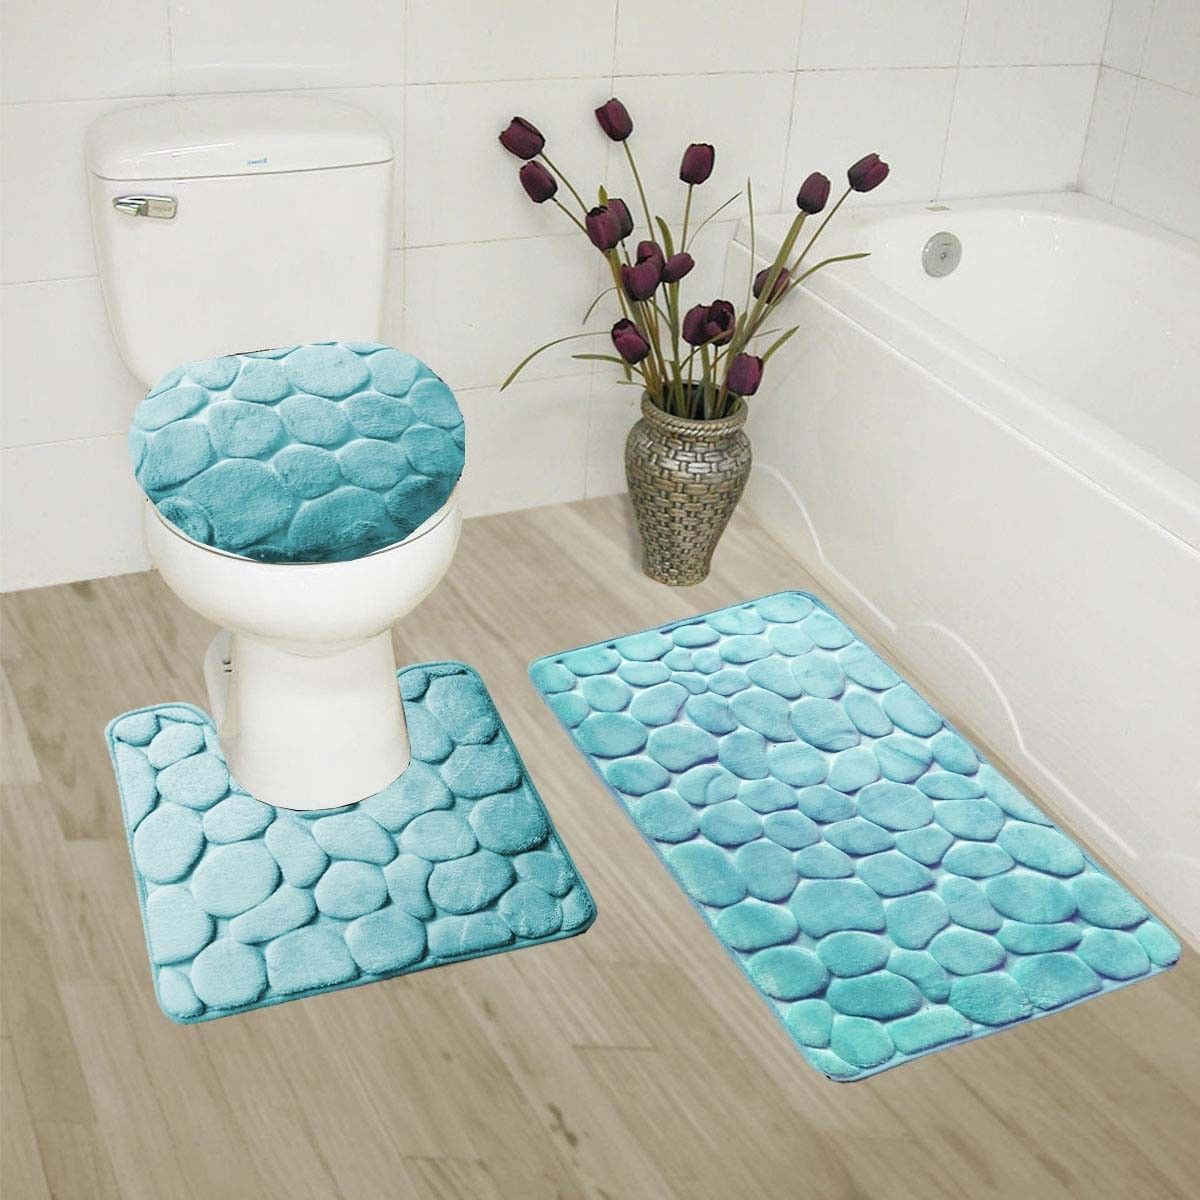 """AQUA 3-Piece Rock Memory Foam Bathroom Mat Set, Flannel Embossed Rug 19""""x 30"""", Contour Mat 19""""x19"""", and Toilet Lid Cover 19""""x19"""" with Non-Skid Rubber Back"""